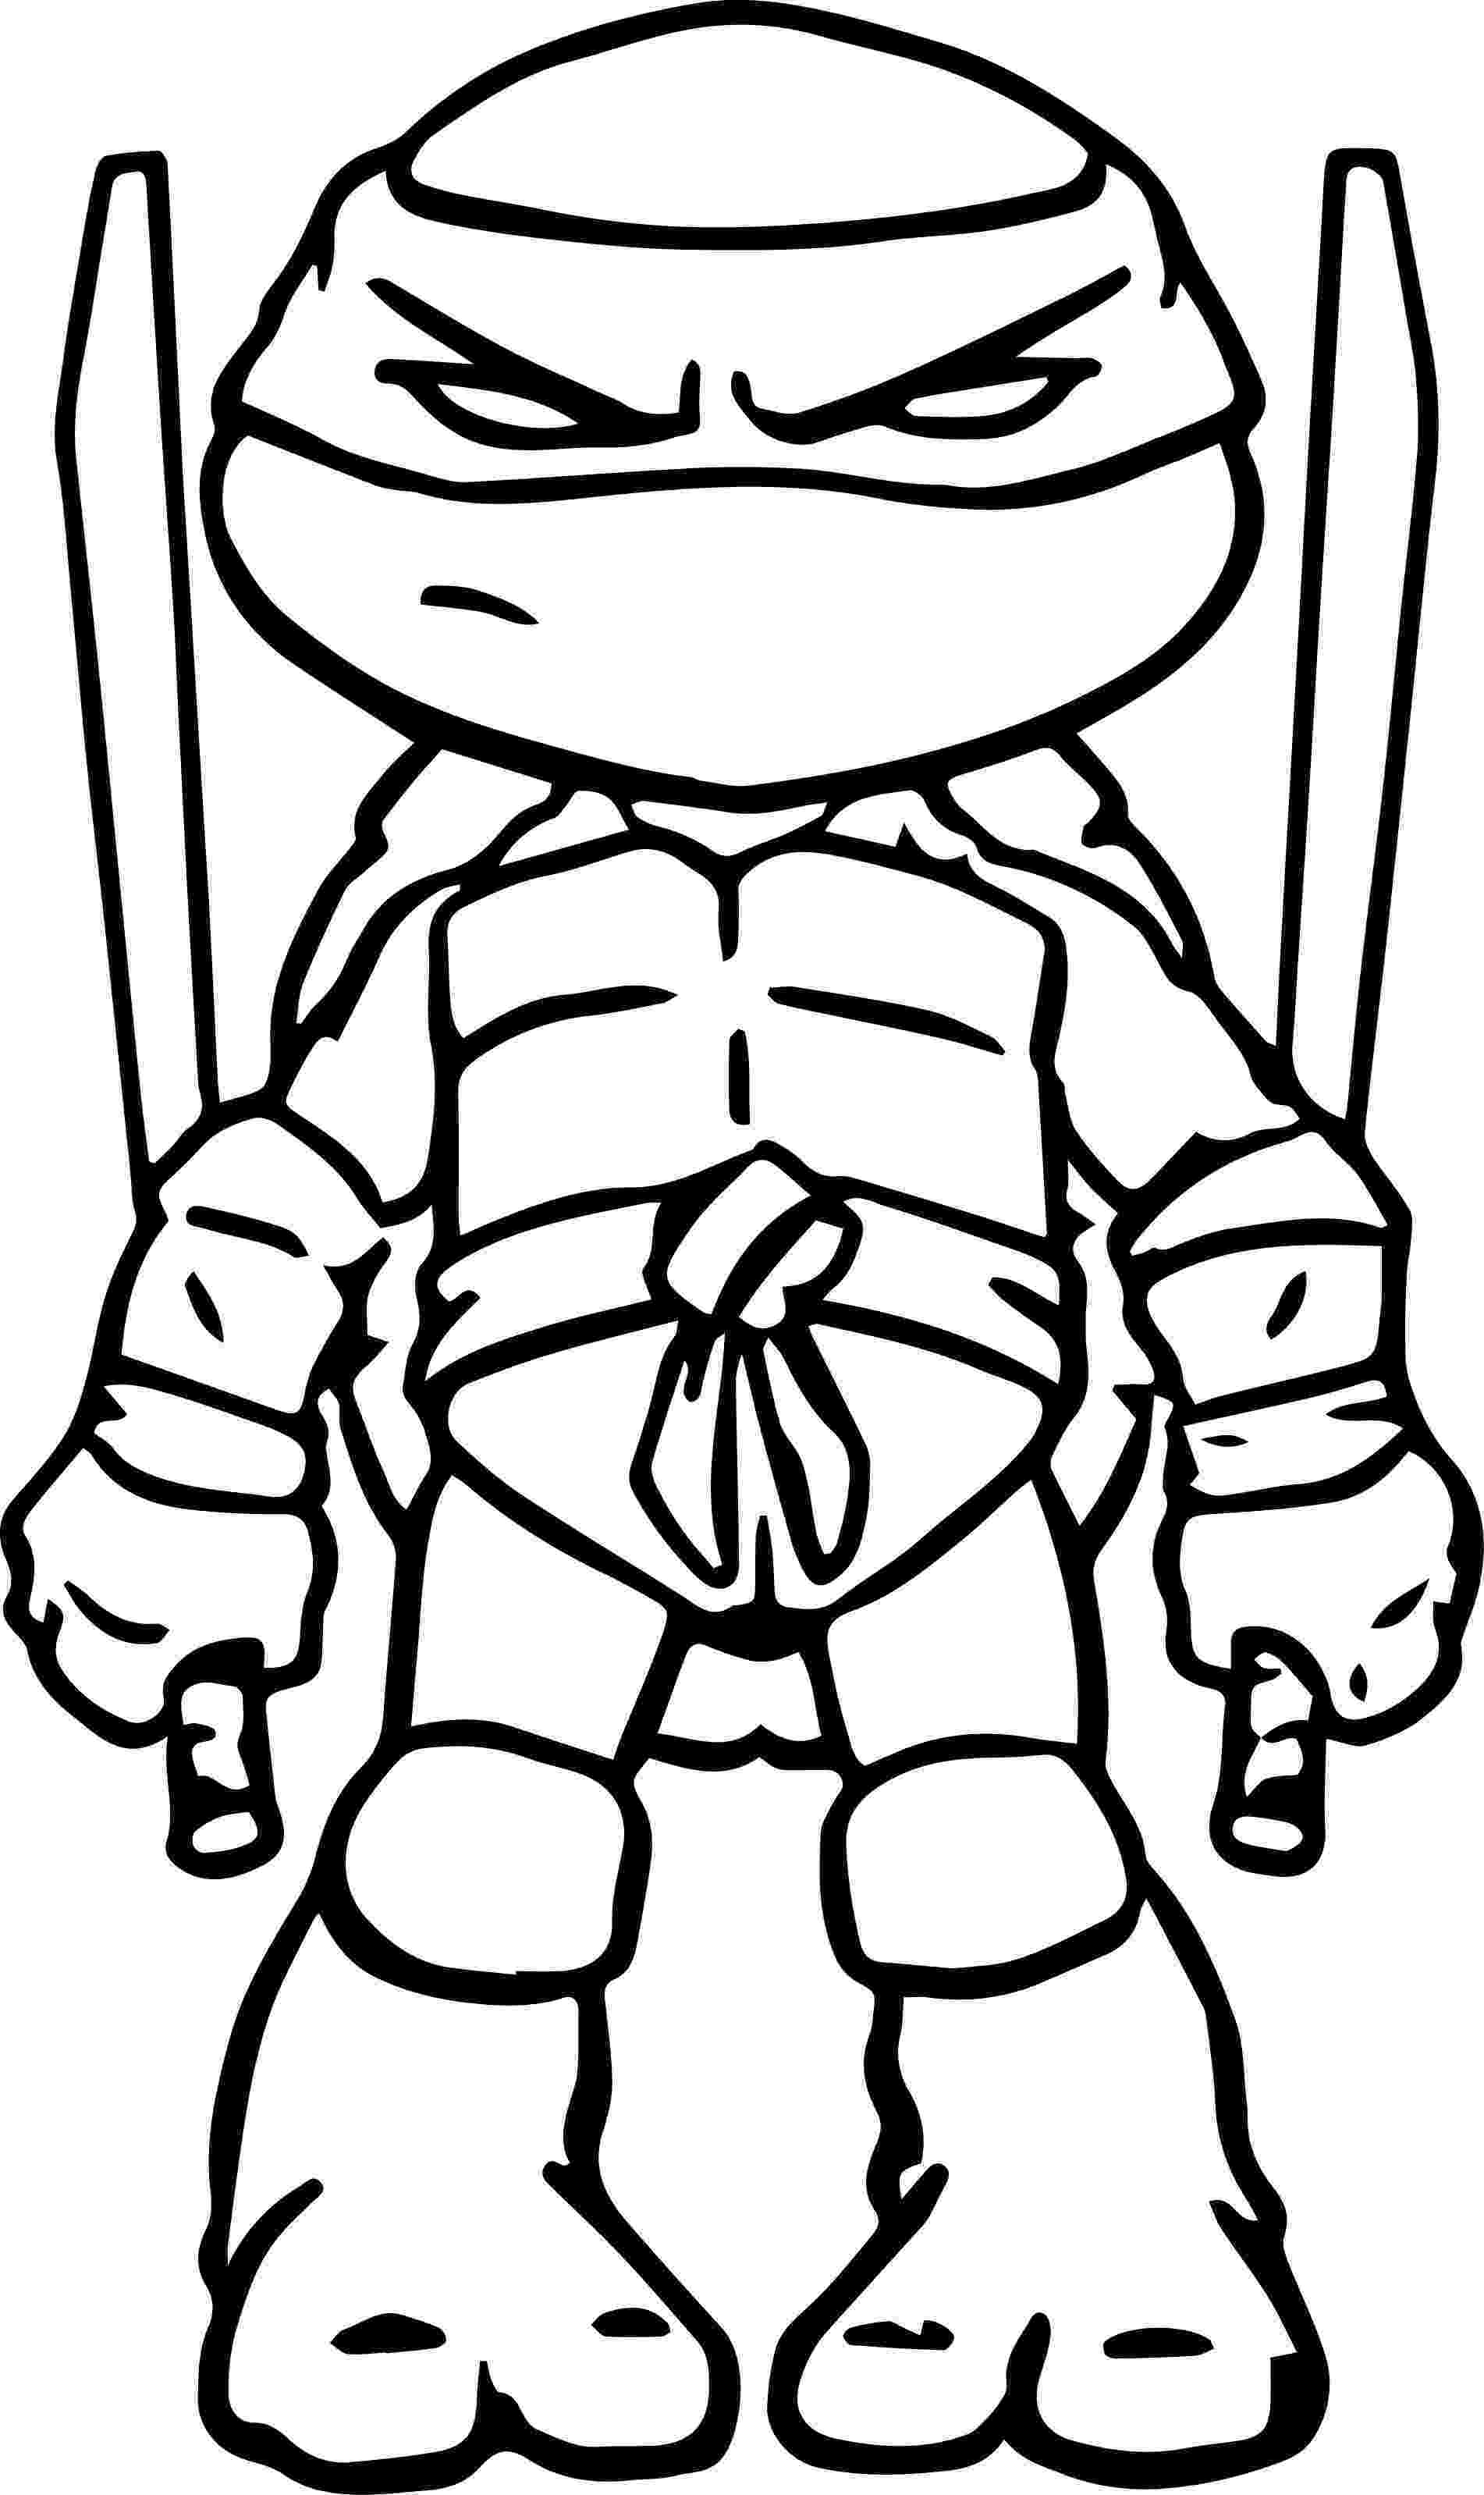 free tmnt coloring pages ninja turtles art coloring page ninja turtle coloring pages tmnt free coloring